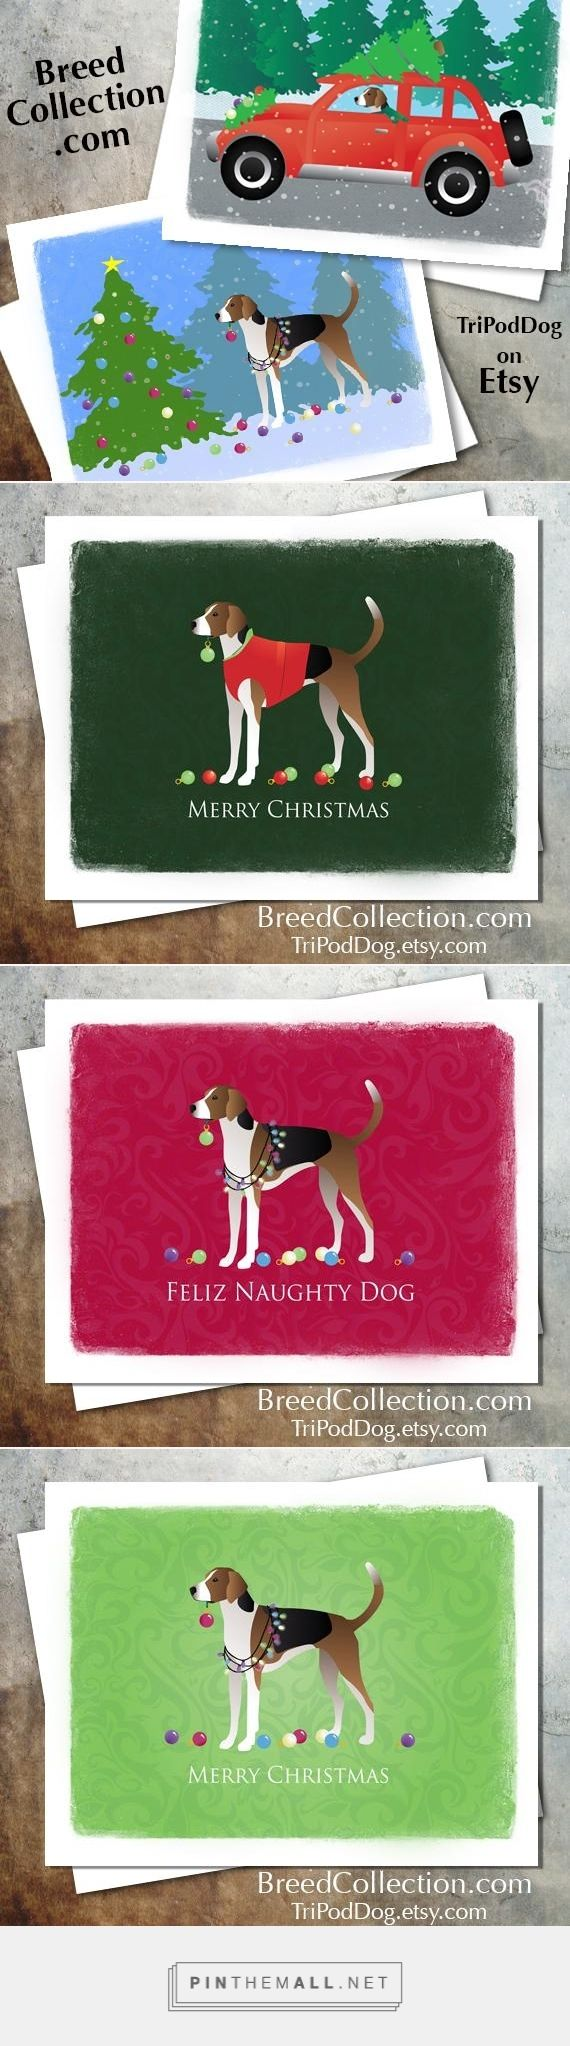 American Foxhound Dog Christmas Cards from the Breed Collection - Digital Download Printable - On Etsy